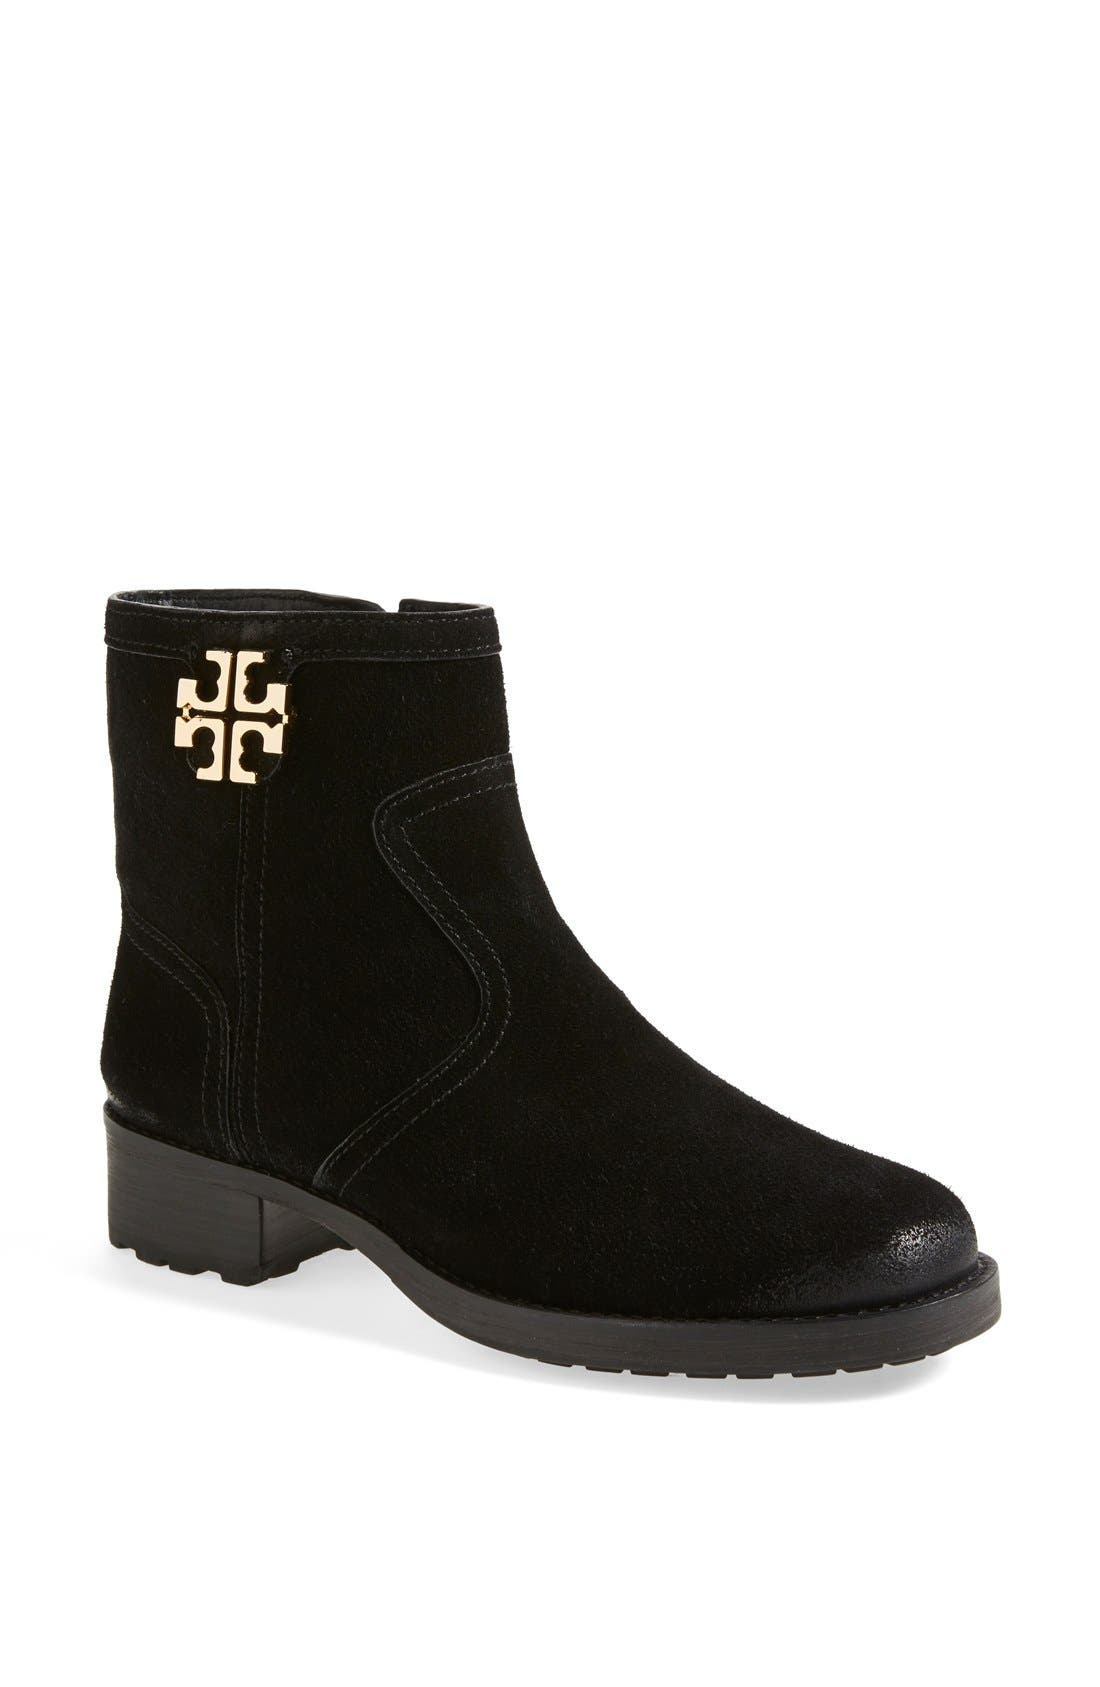 Alternate Image 1 Selected - Tory Burch 'Eloise' Flat Bootie